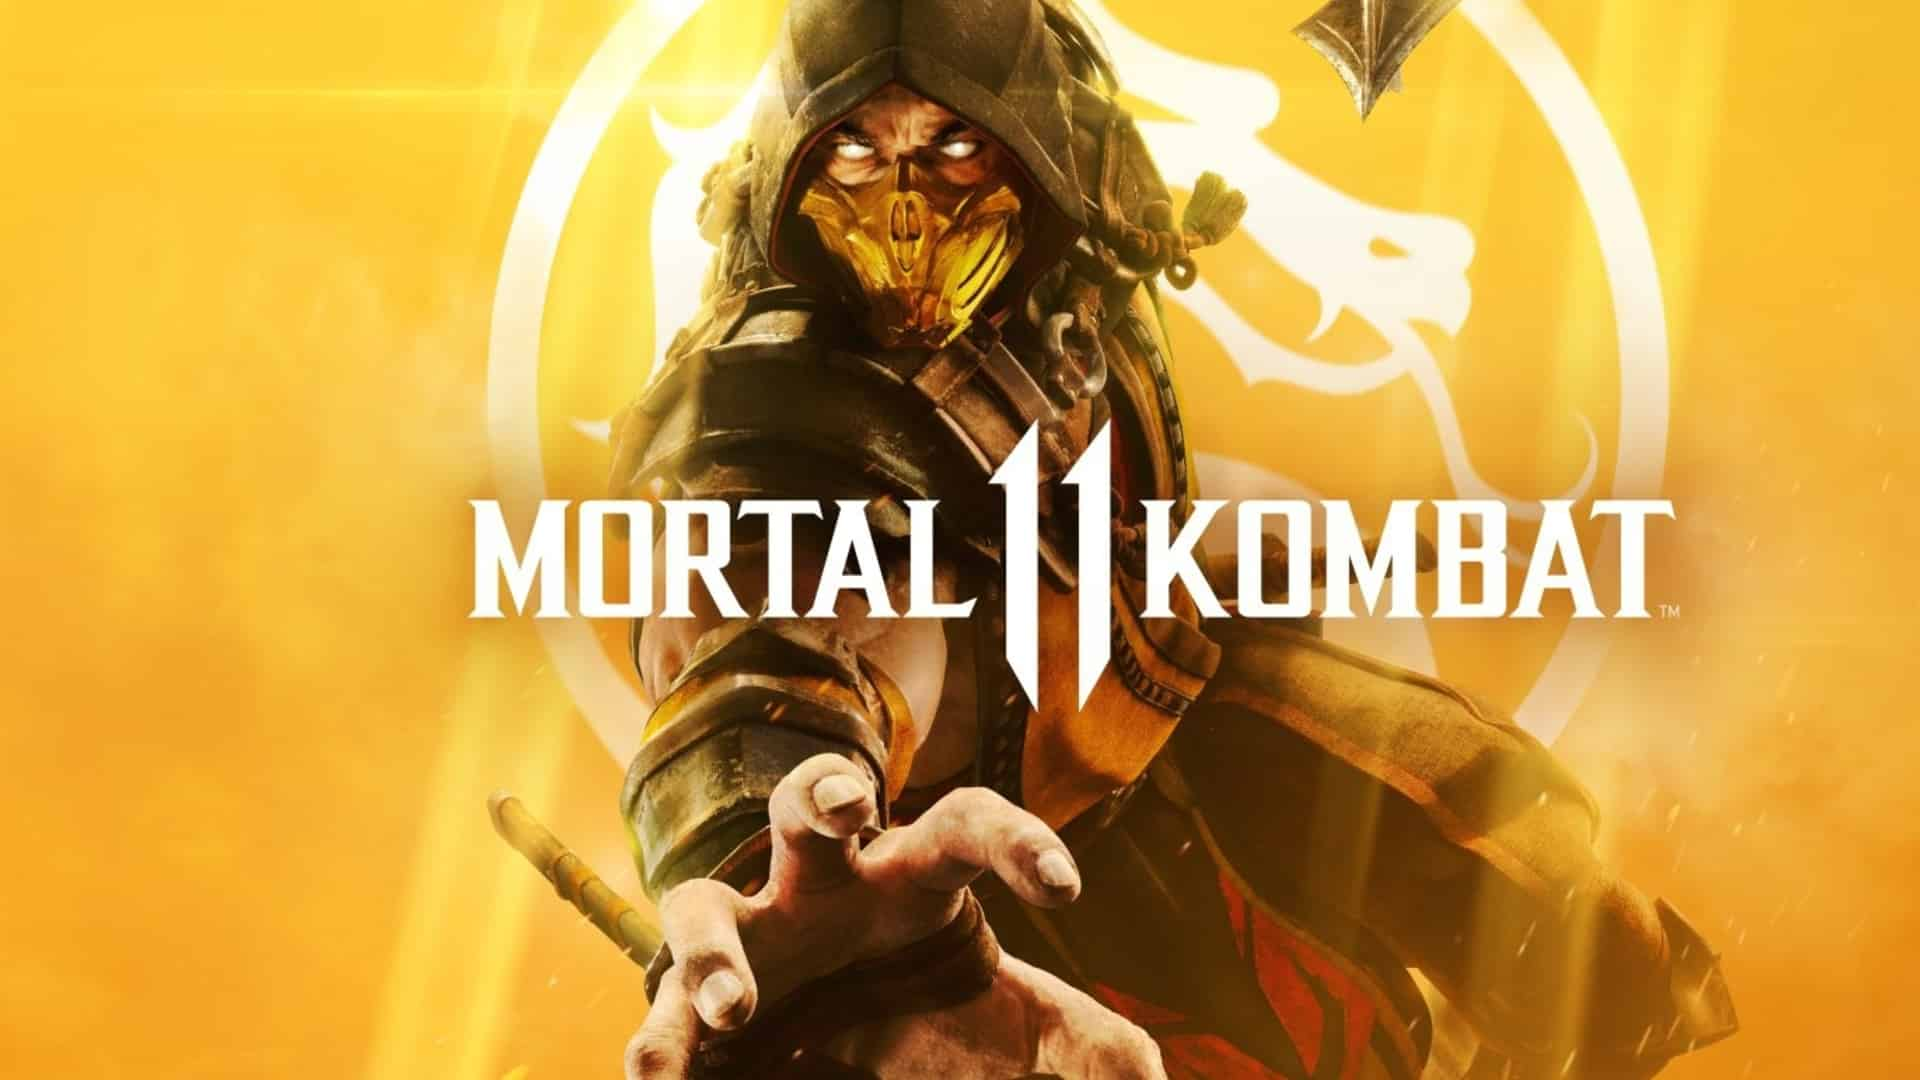 Mortal Kombat 11 trailer